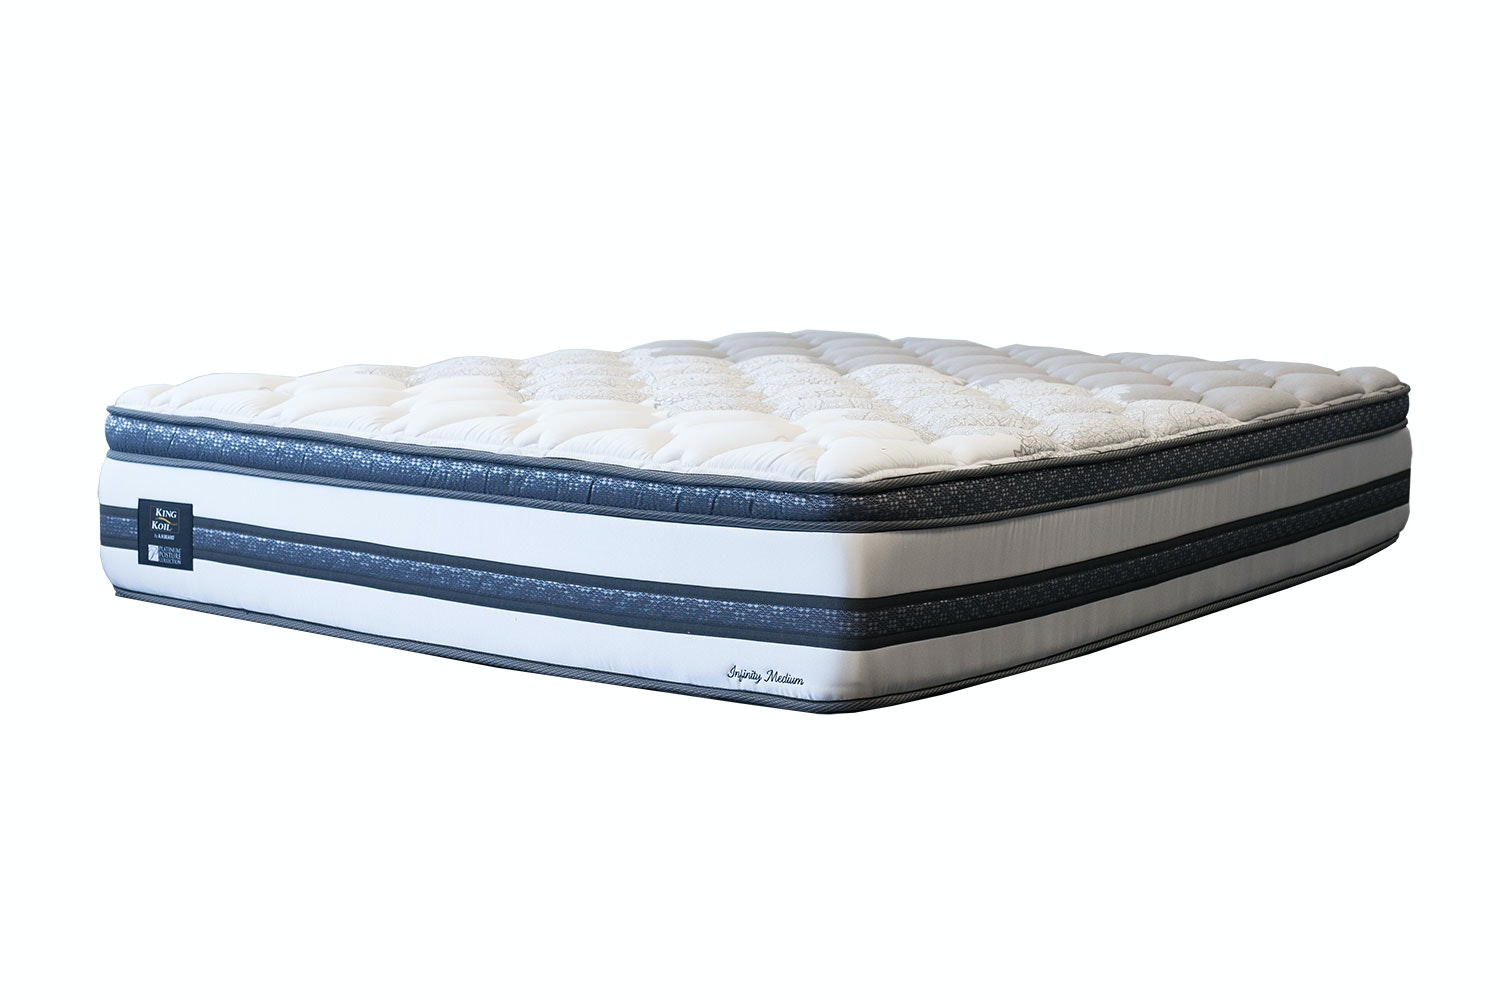 Infinity Medium Single Mattress by King Koil